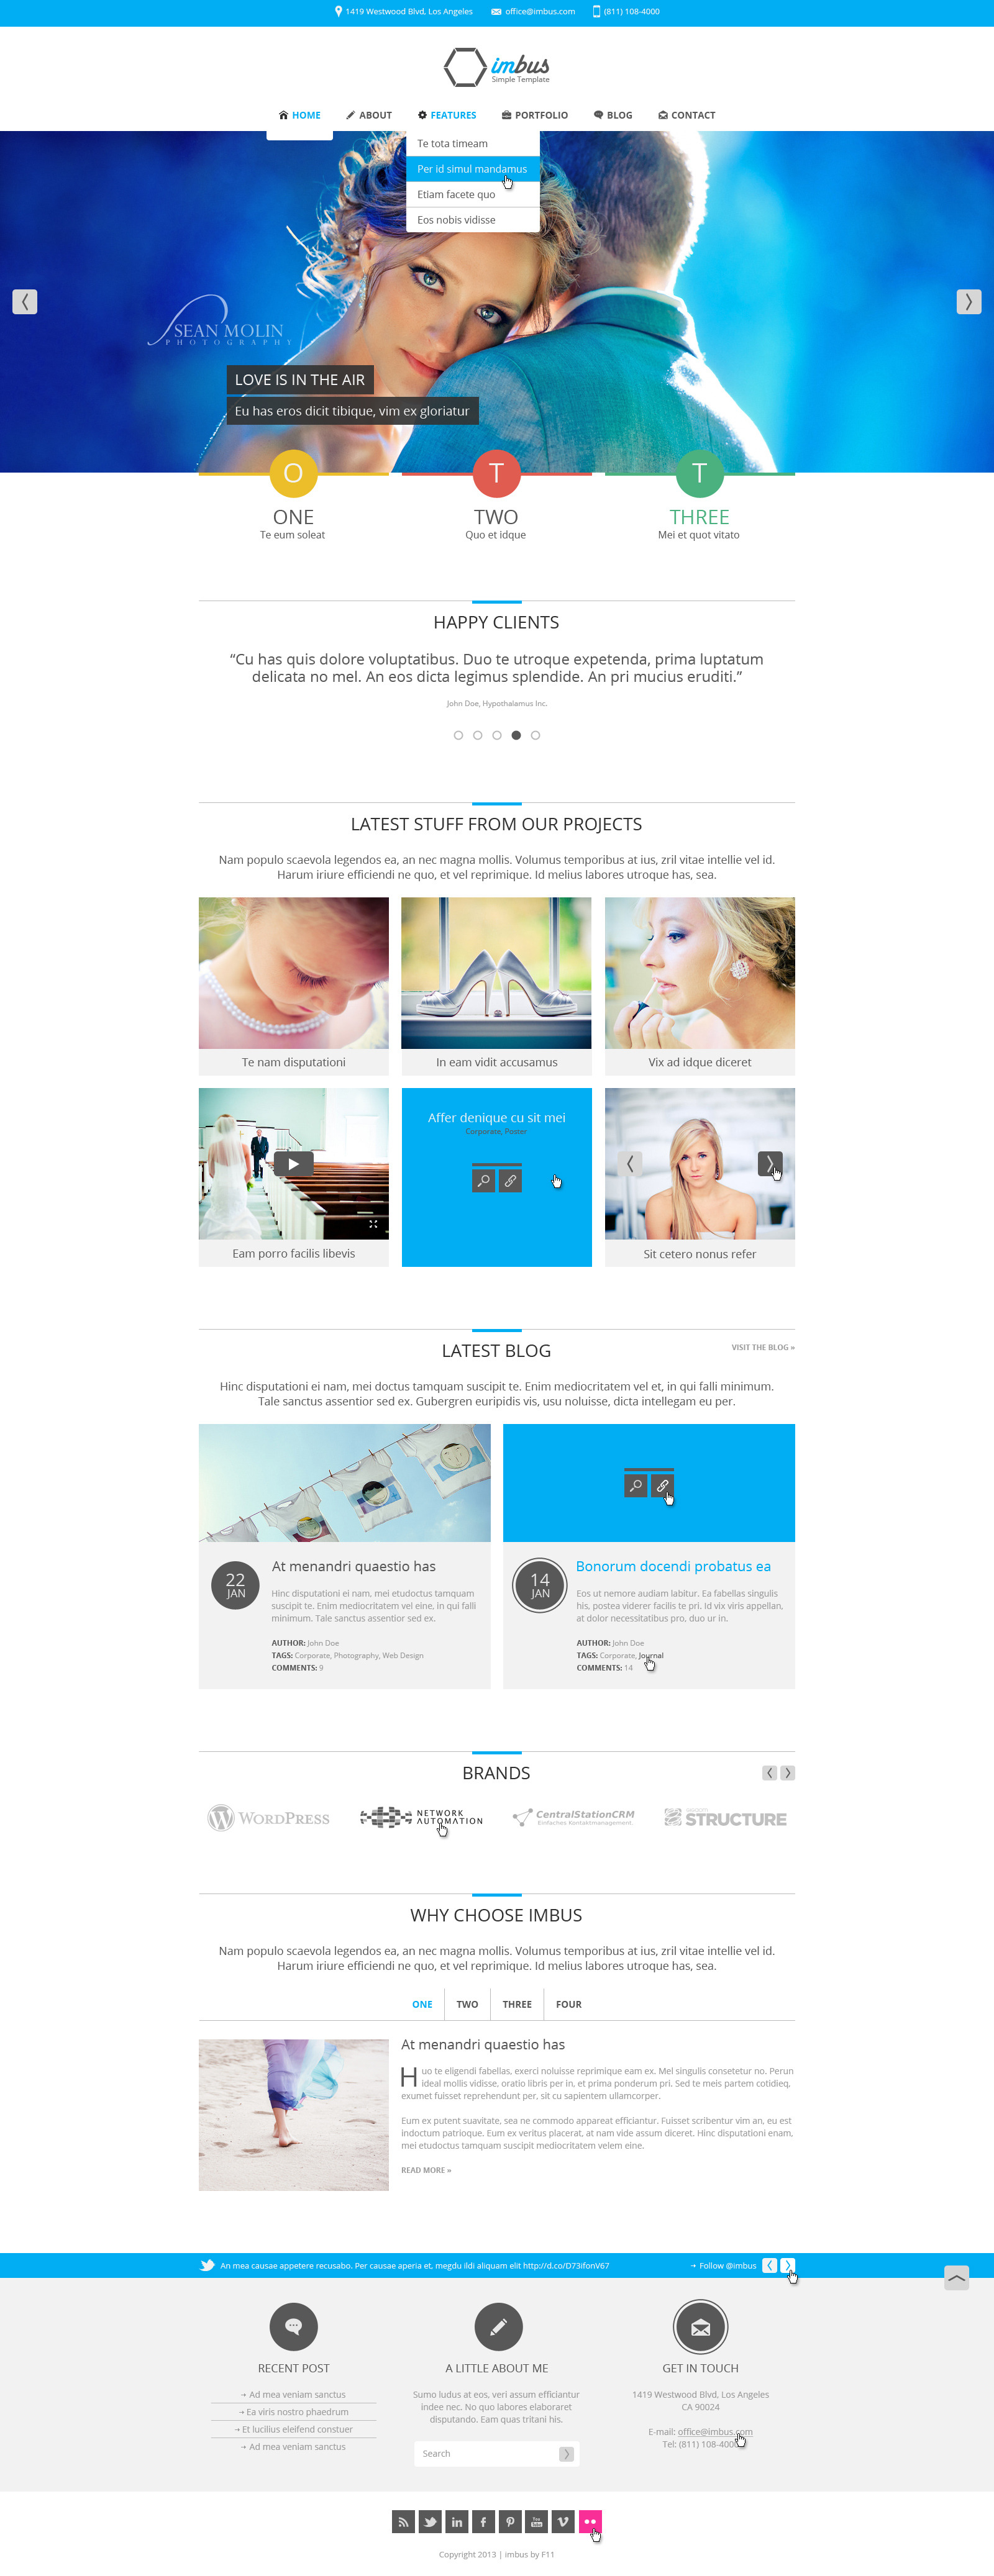 imbus - Simple PSD Template - imbus - Simple PSD Template.  Home multipurpose inspiration - blue.